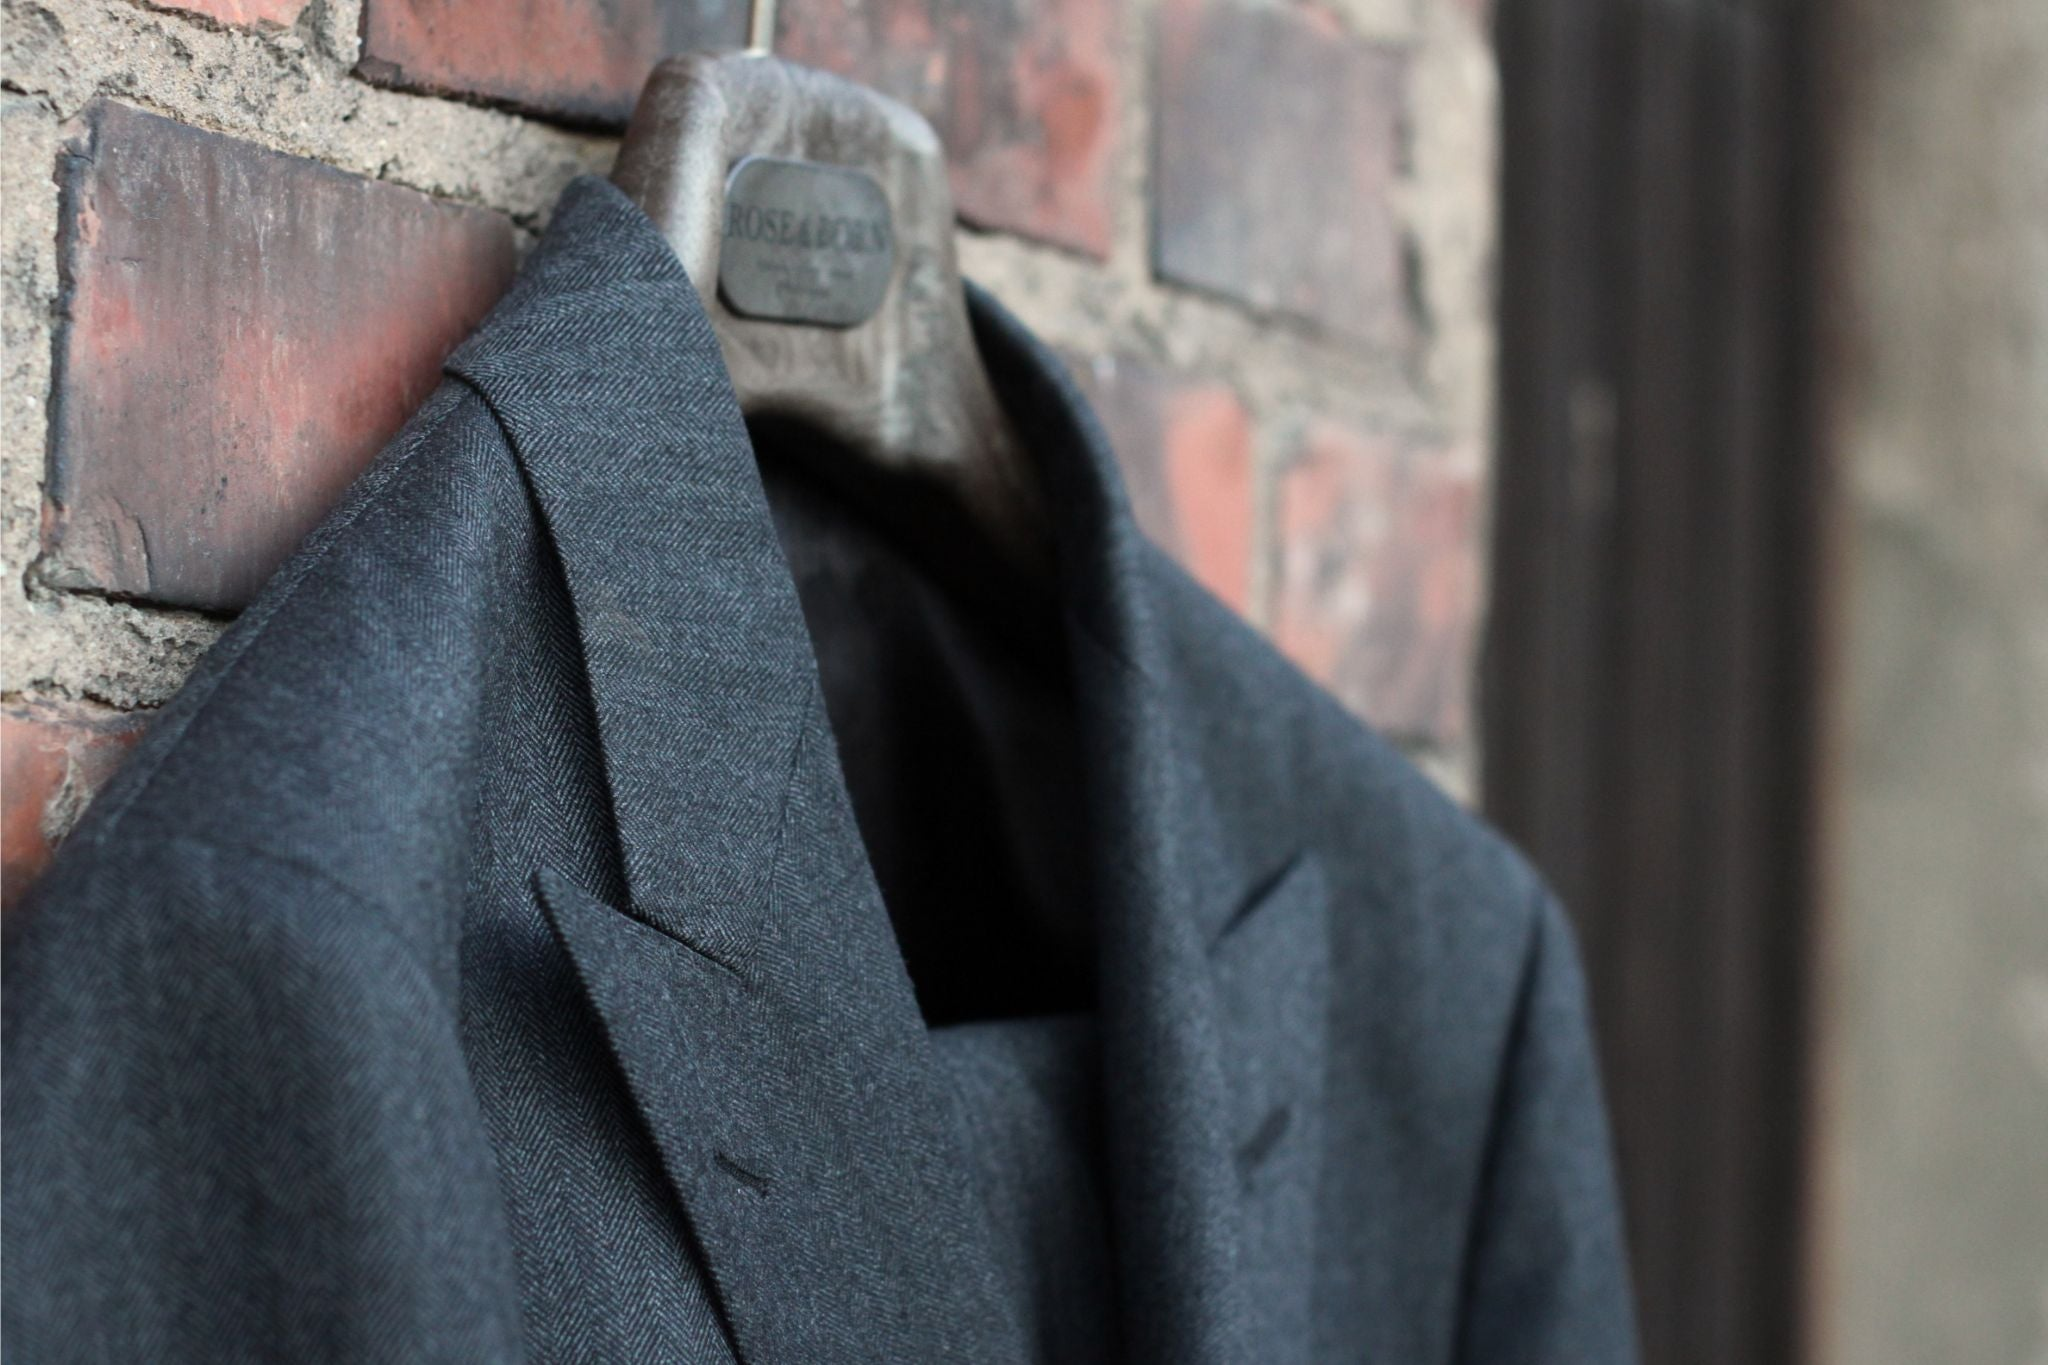 How to buy a business suit - Rose&Born herringbone wool suit